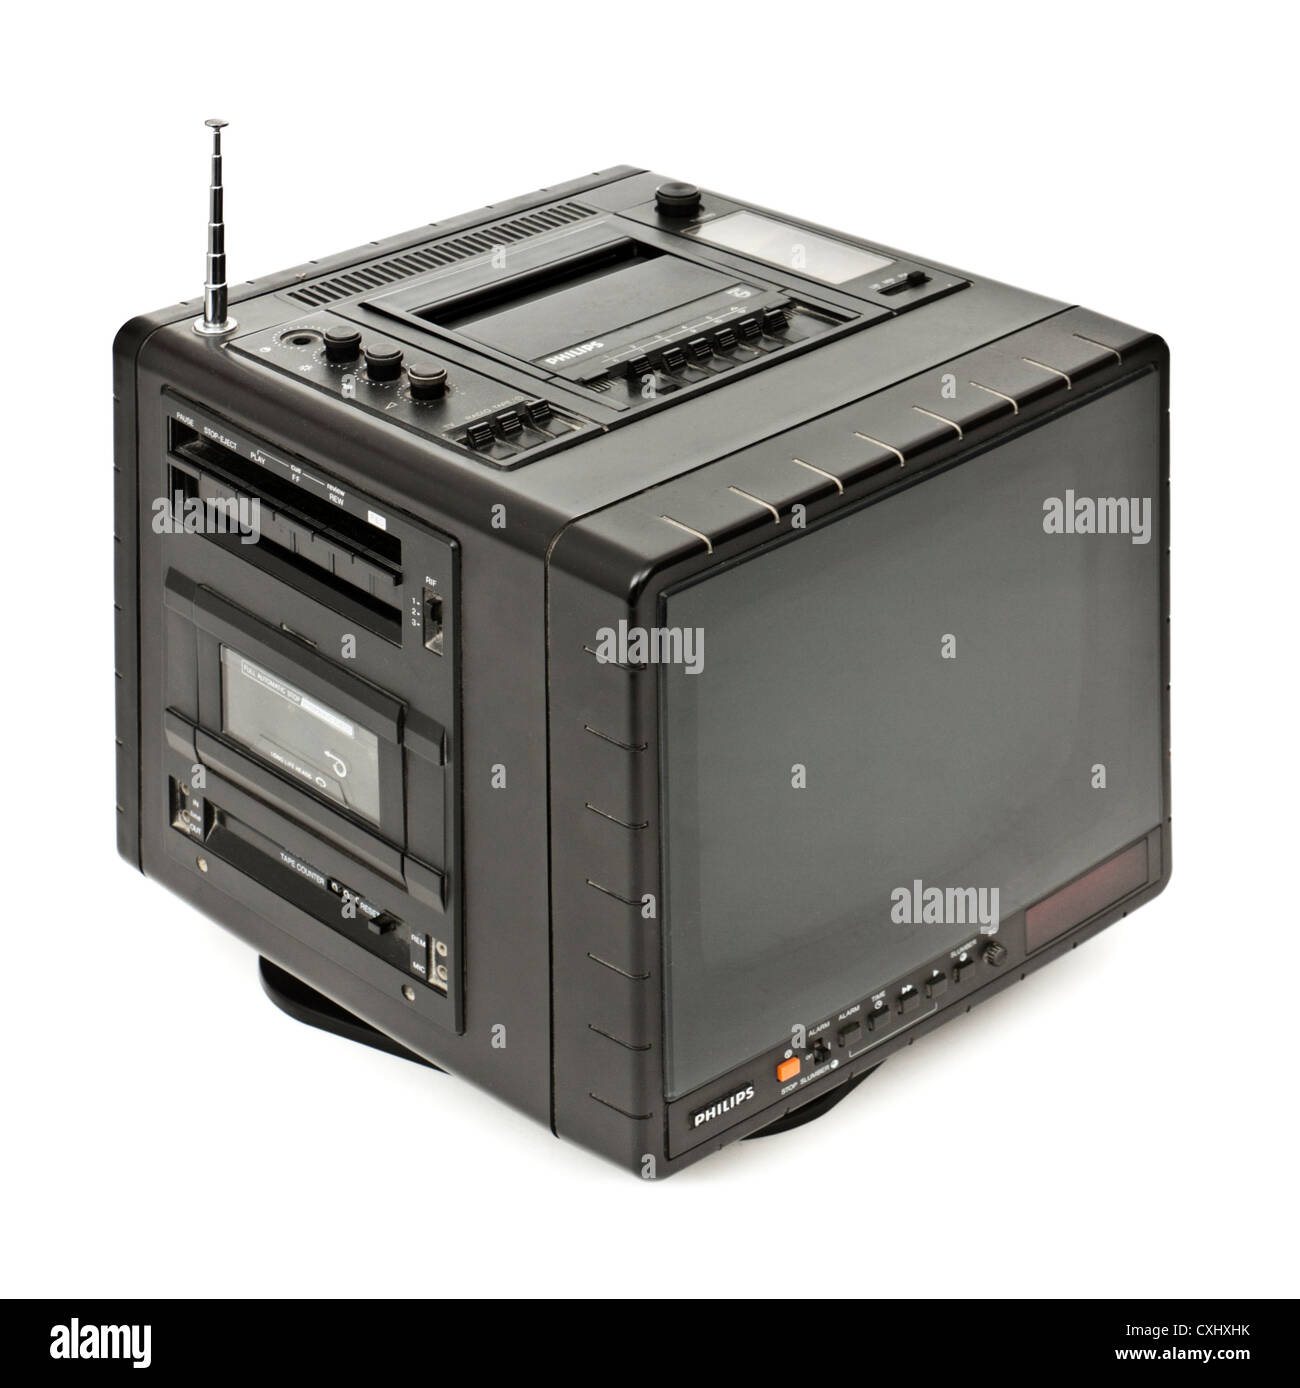 Rare vintage (1980) Philips 9TC 2100 all-in-one portable B&W television with built-in cassette recorder, radio - Stock Image